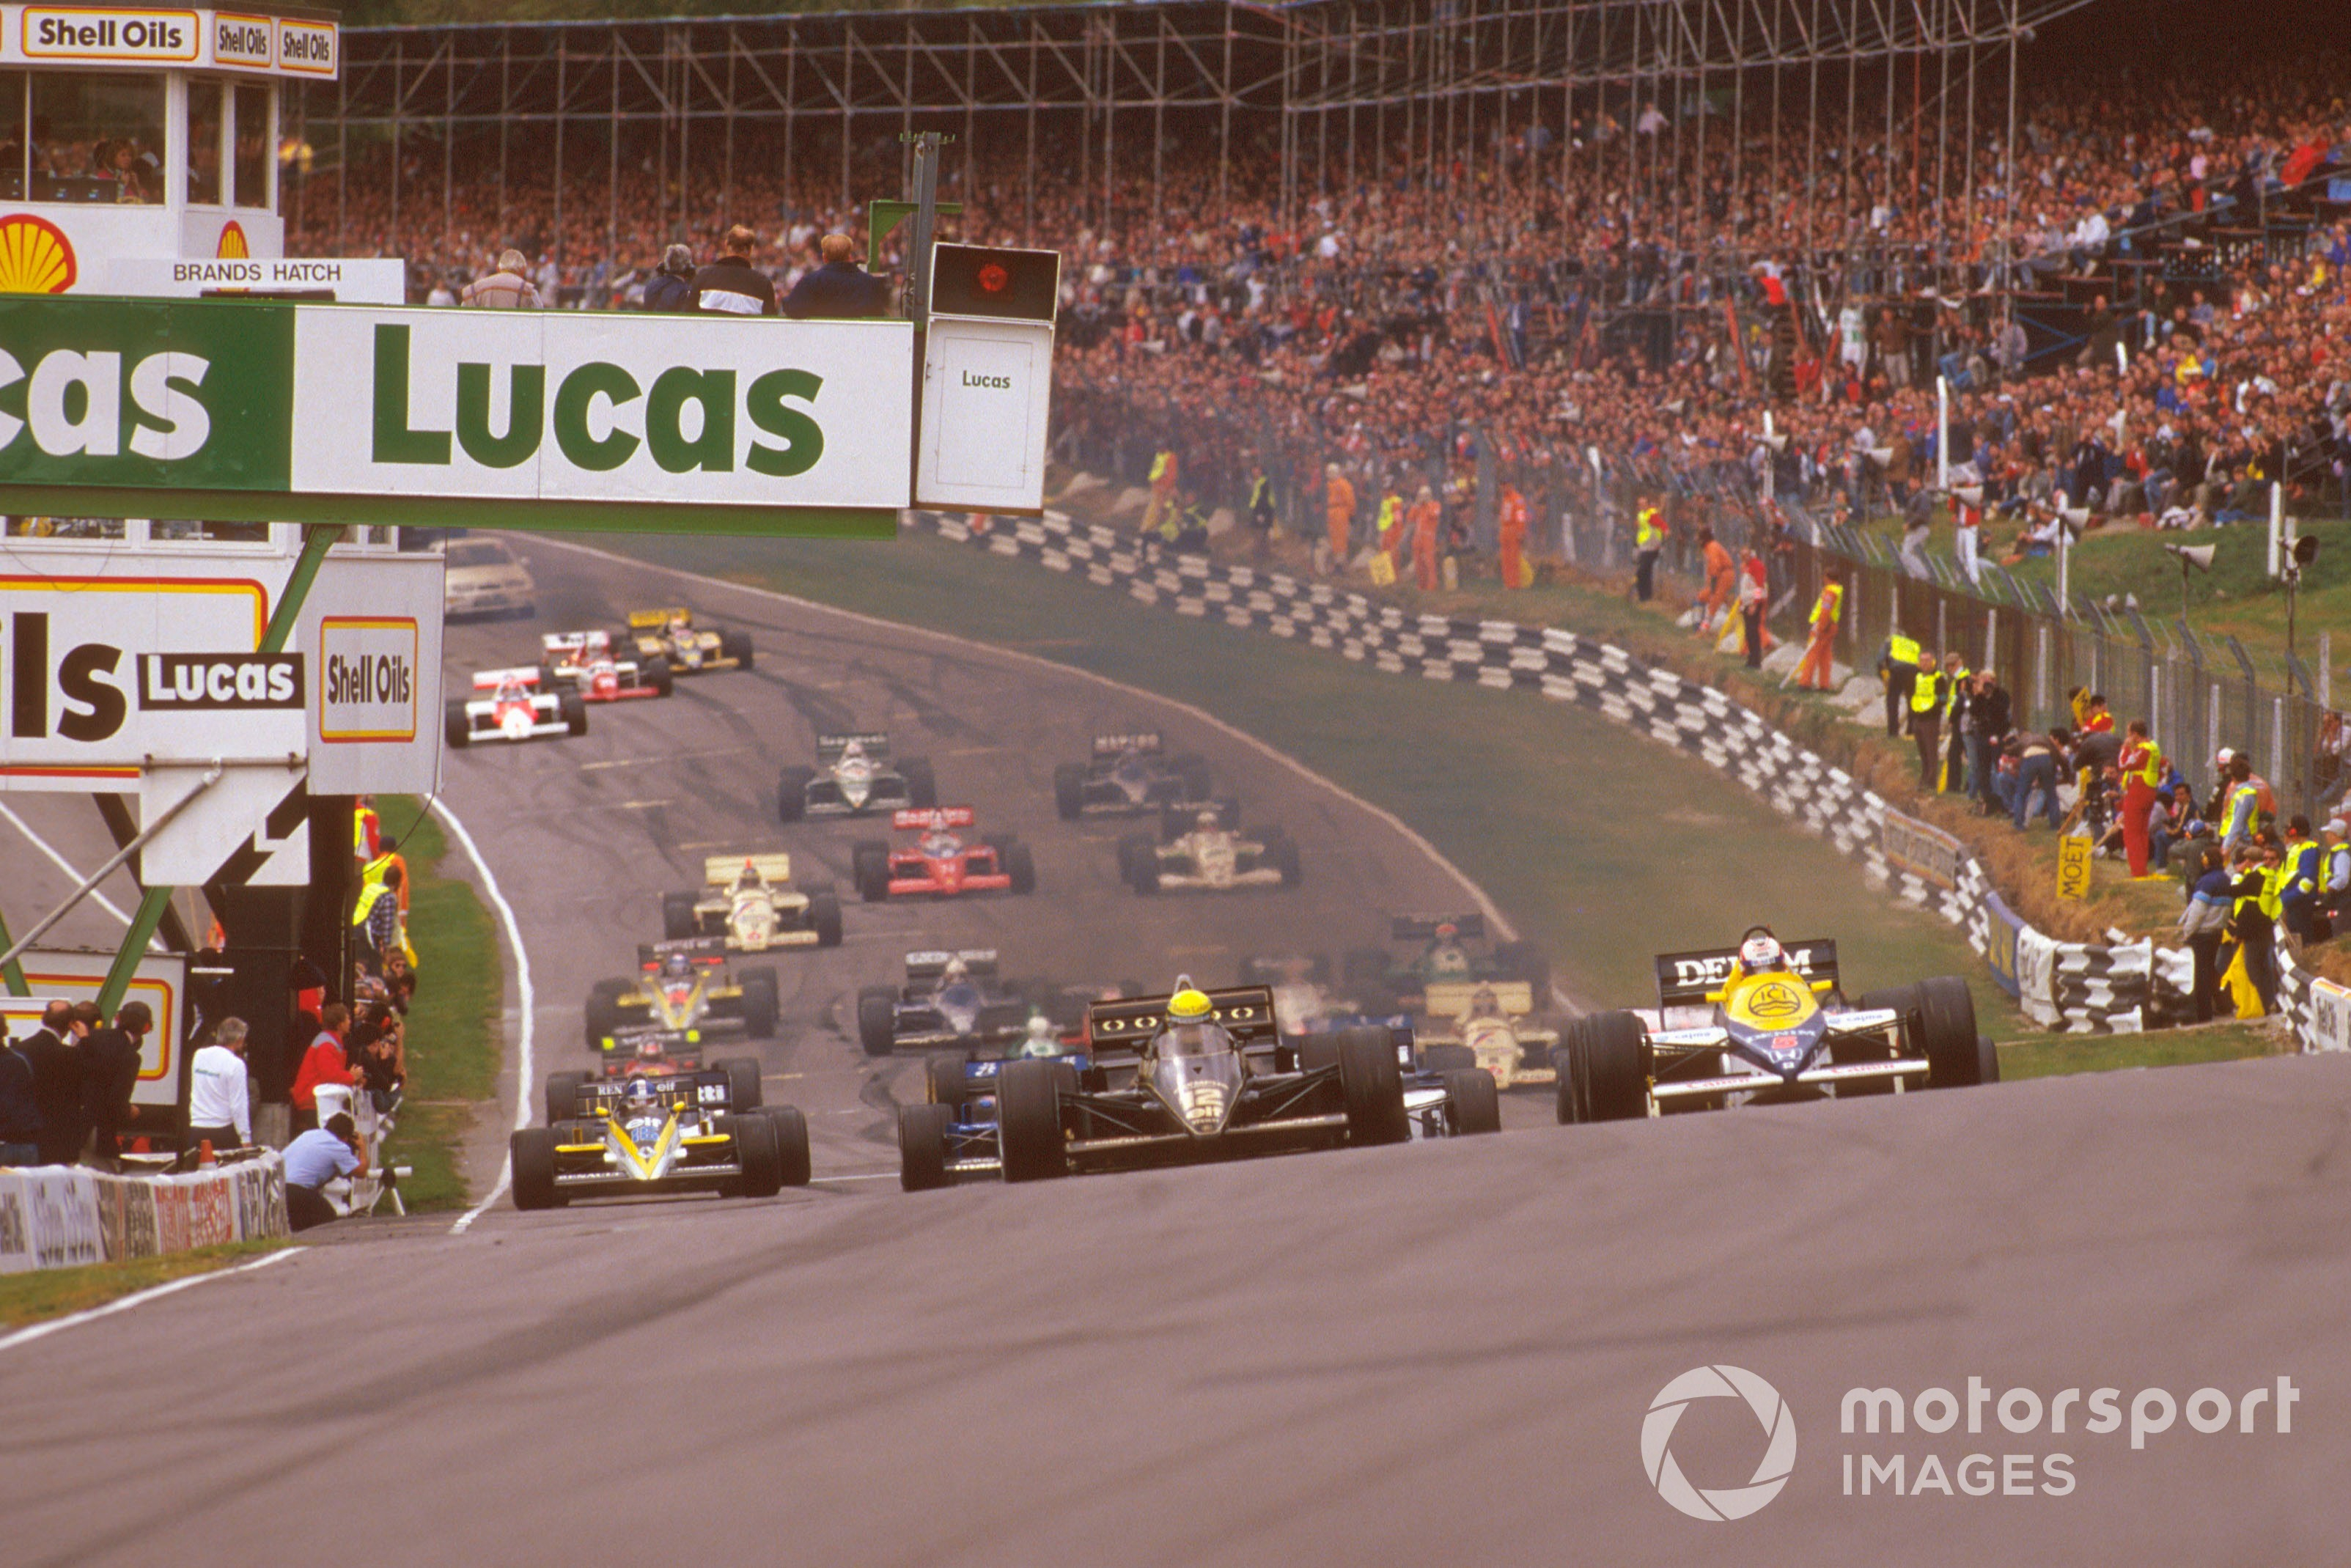 Ayrton Senna in the Lotus-Renault 97T leads the start of the 1985 British GP